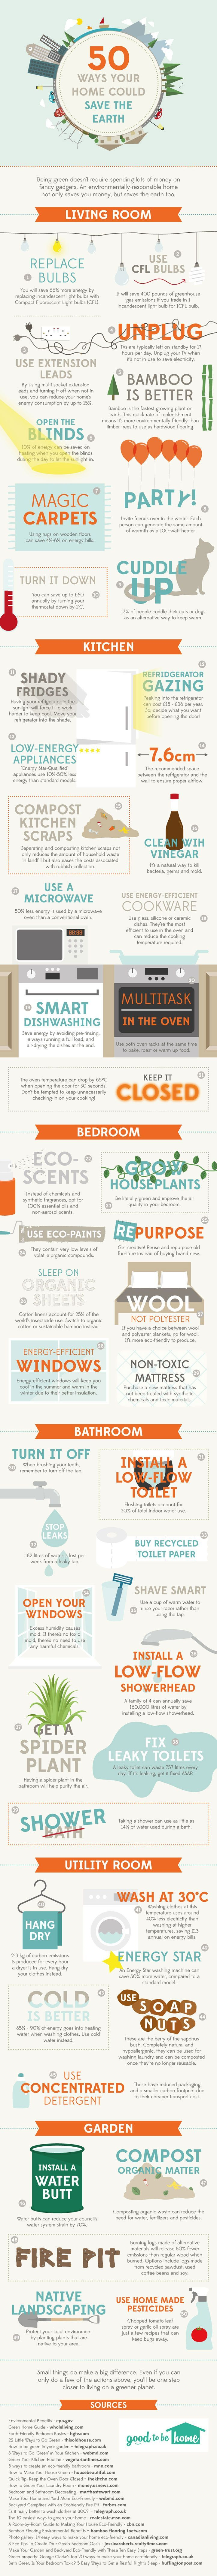 12 best Green Guide & Eco images on Pinterest | Info graphics ...